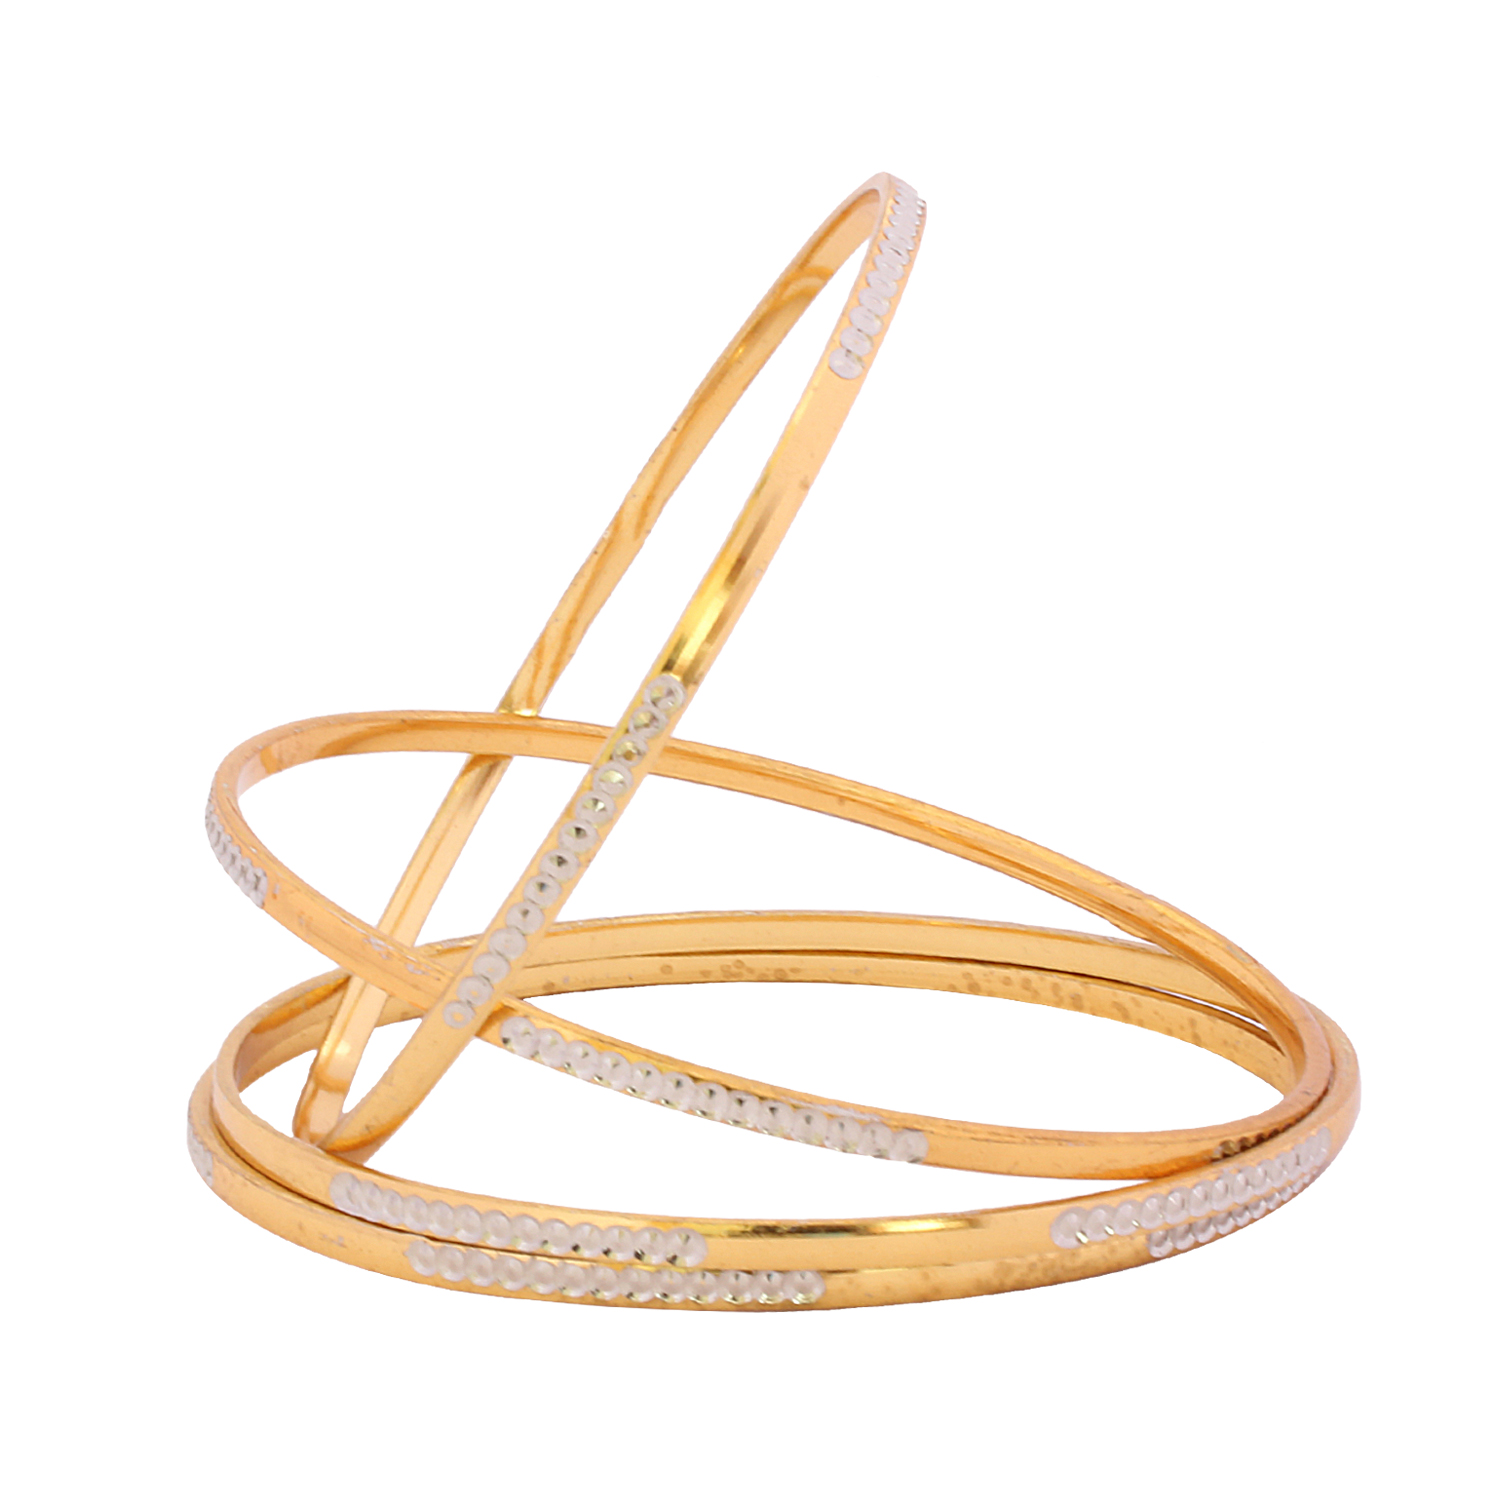 bracelet tovi farber unbelievable bangle bangles karat br gold and then some plain